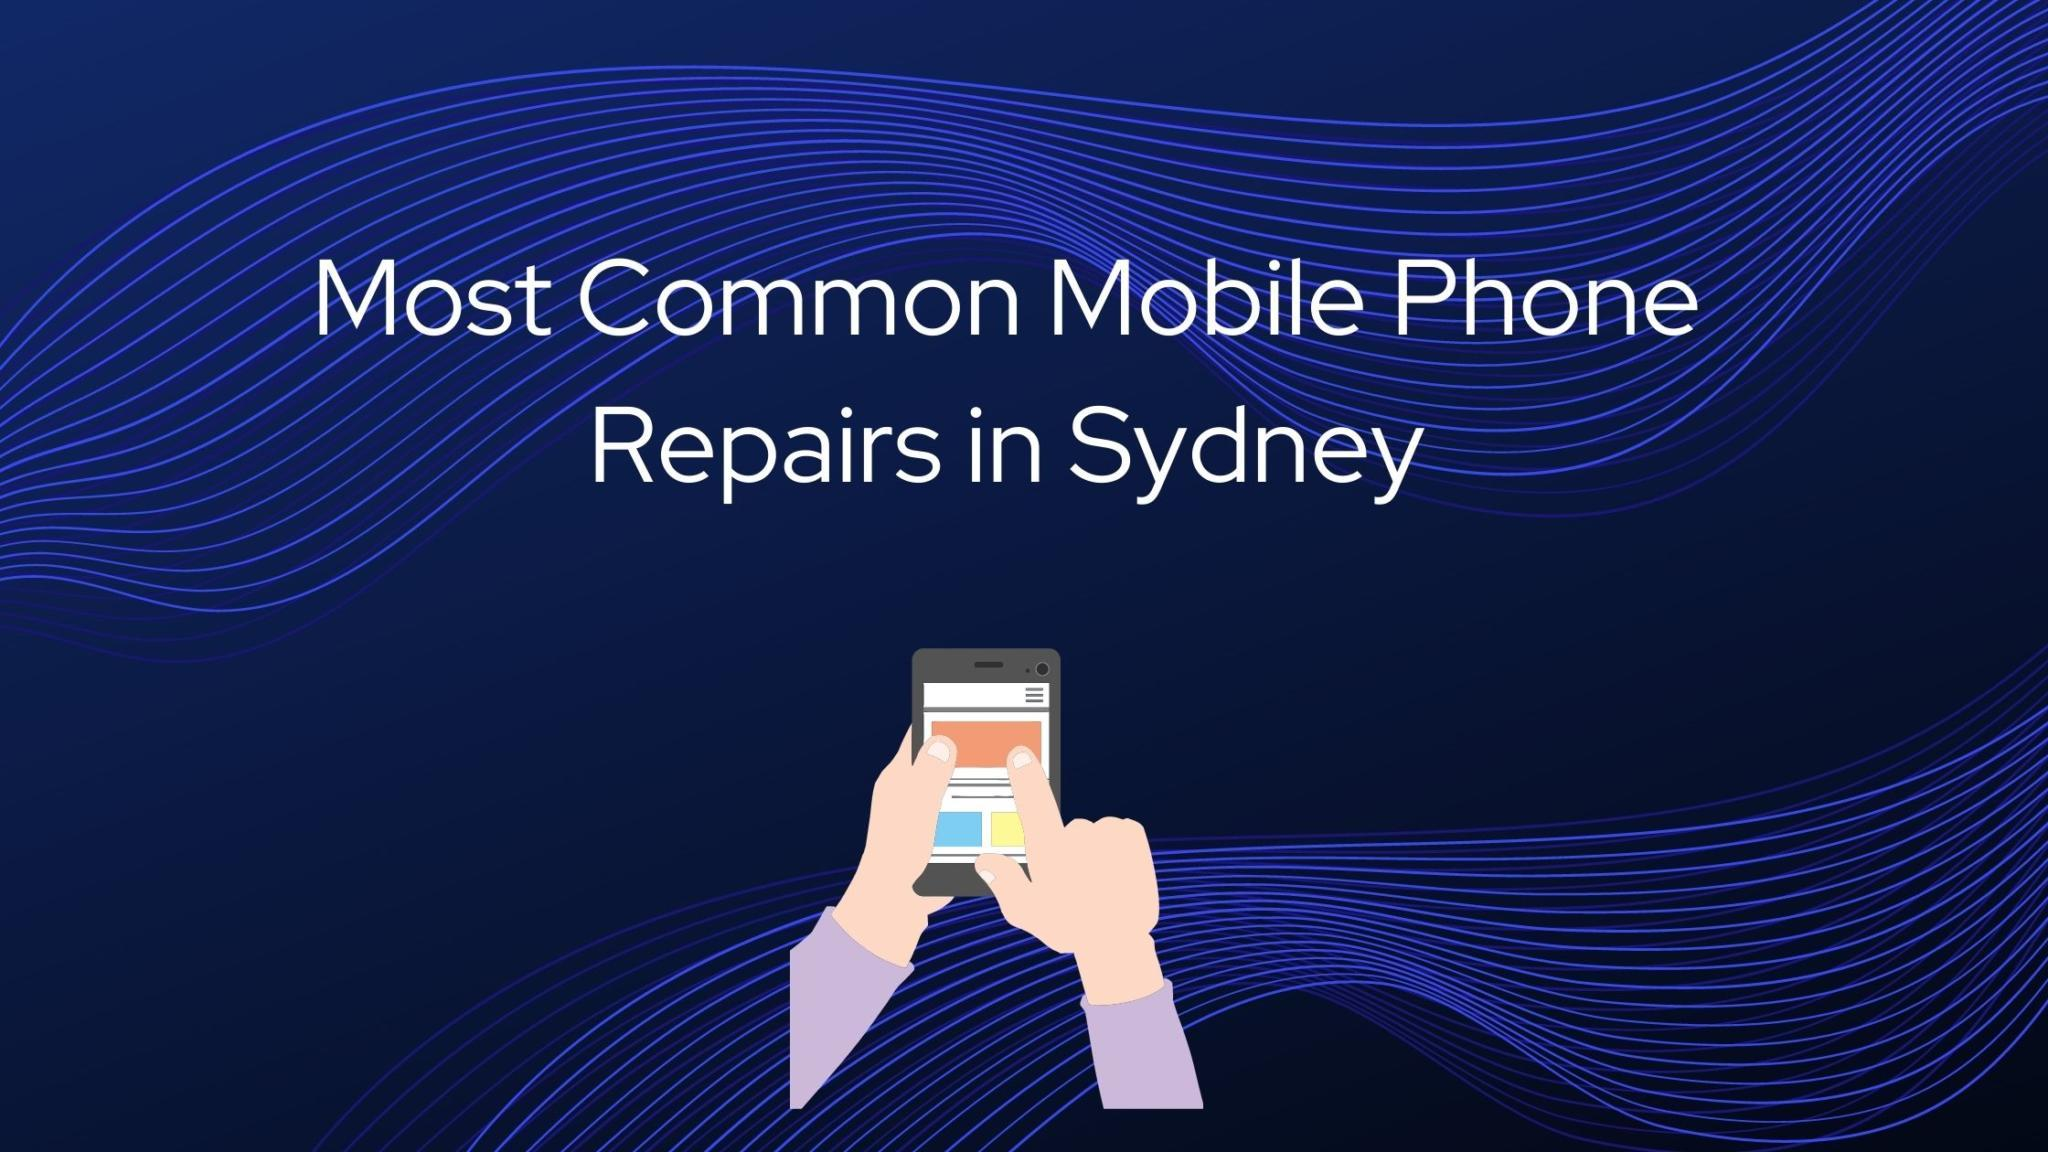 Most Common Mobile Phone Repairs in Sydney